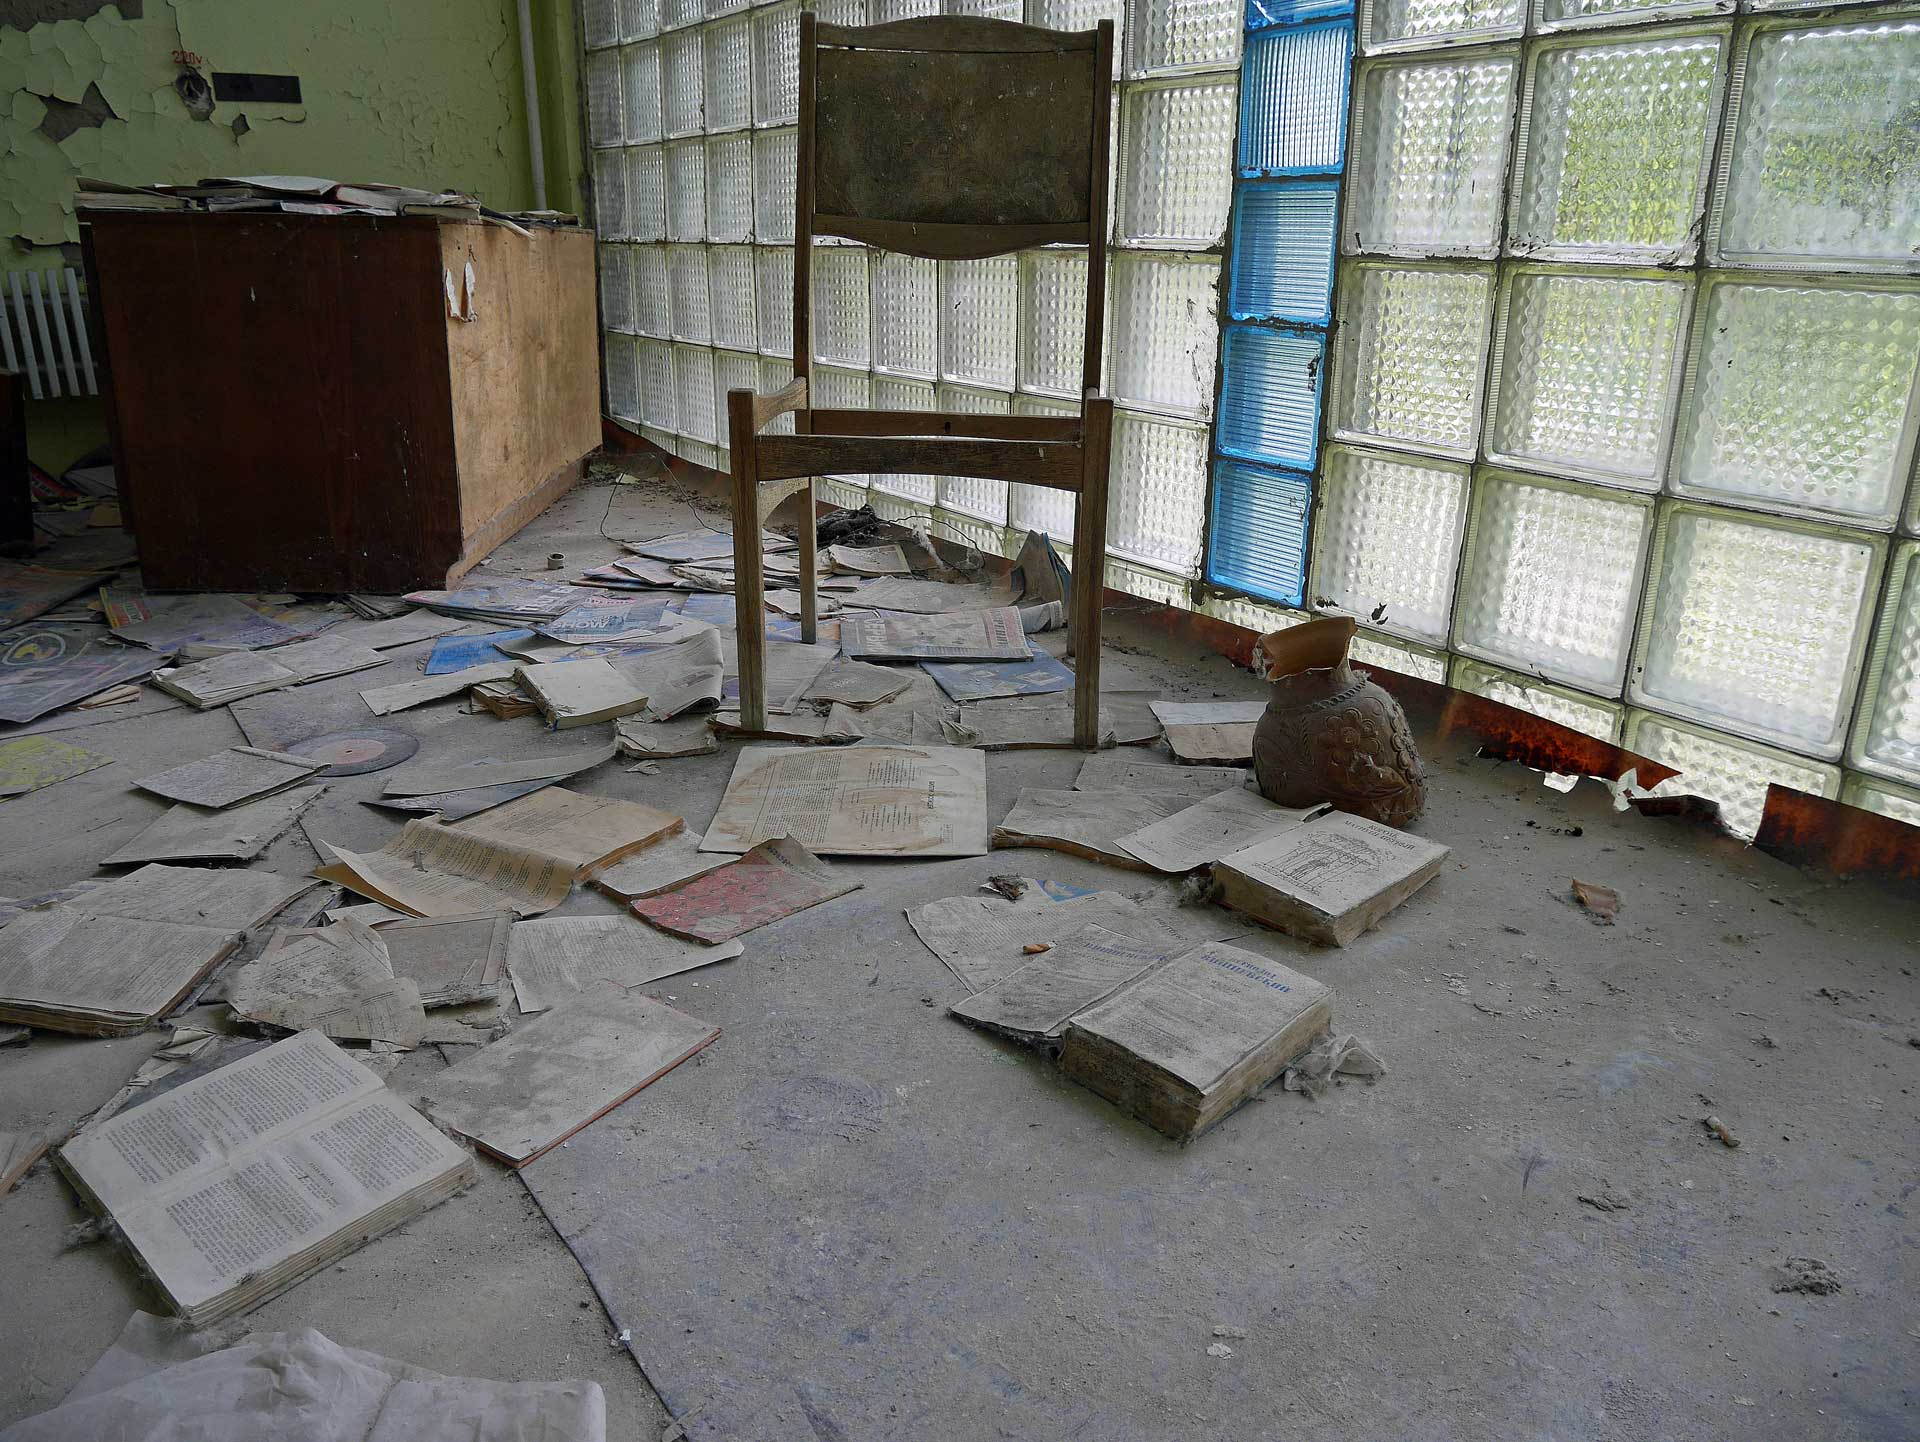 chernobyl-abandoned-research-laboratory-7